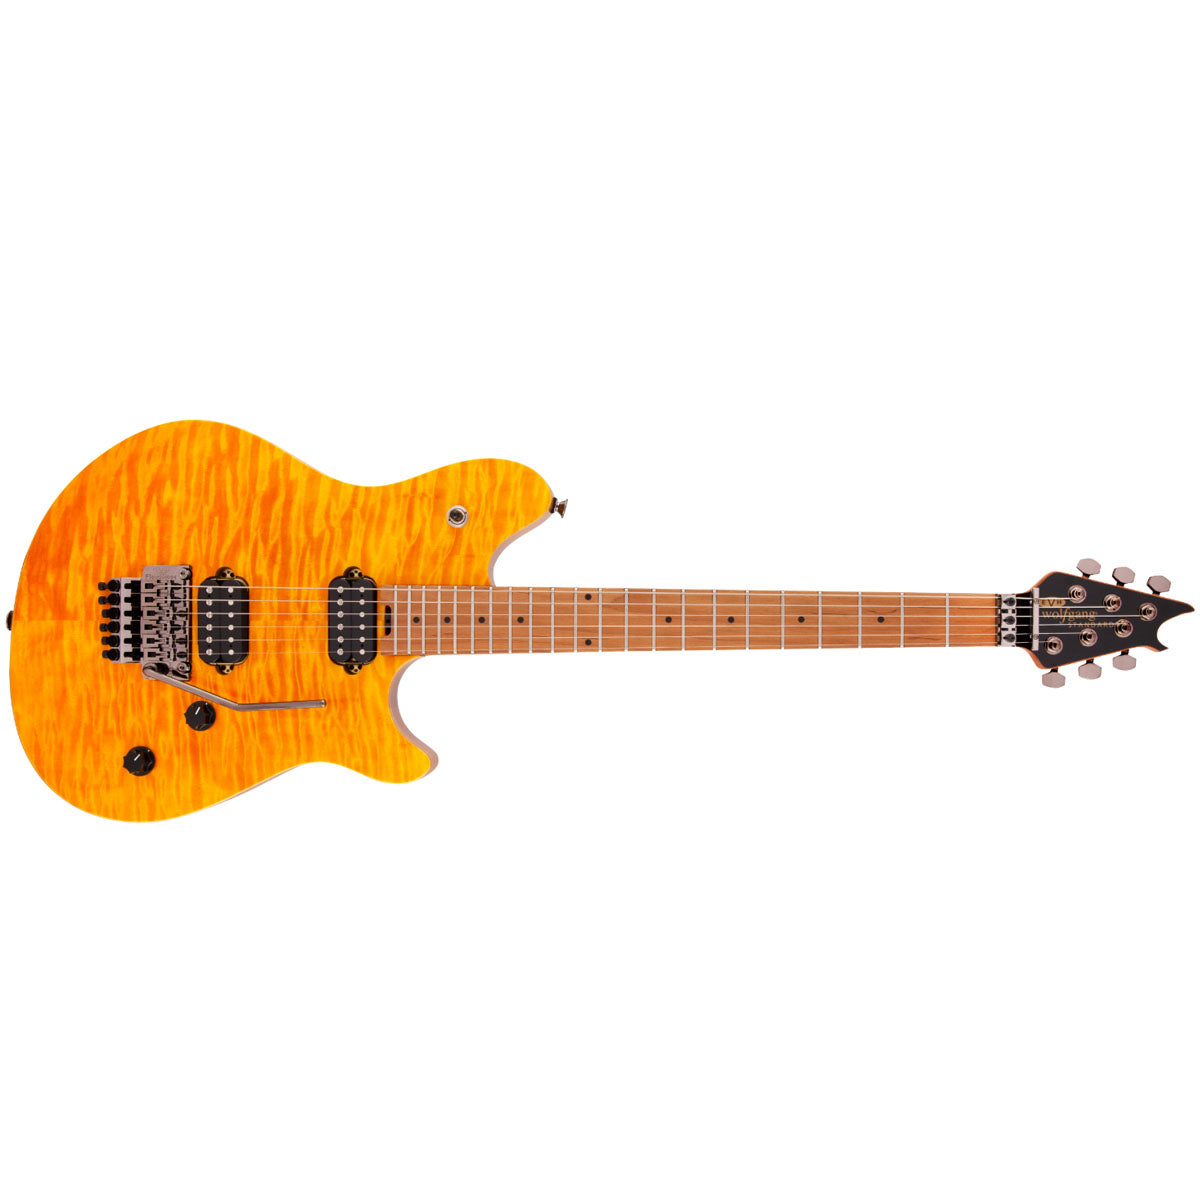 EVH Wolfgang WG Standard QM Electric Guitar Baked Maple FB Transparent Amber - 5107004558